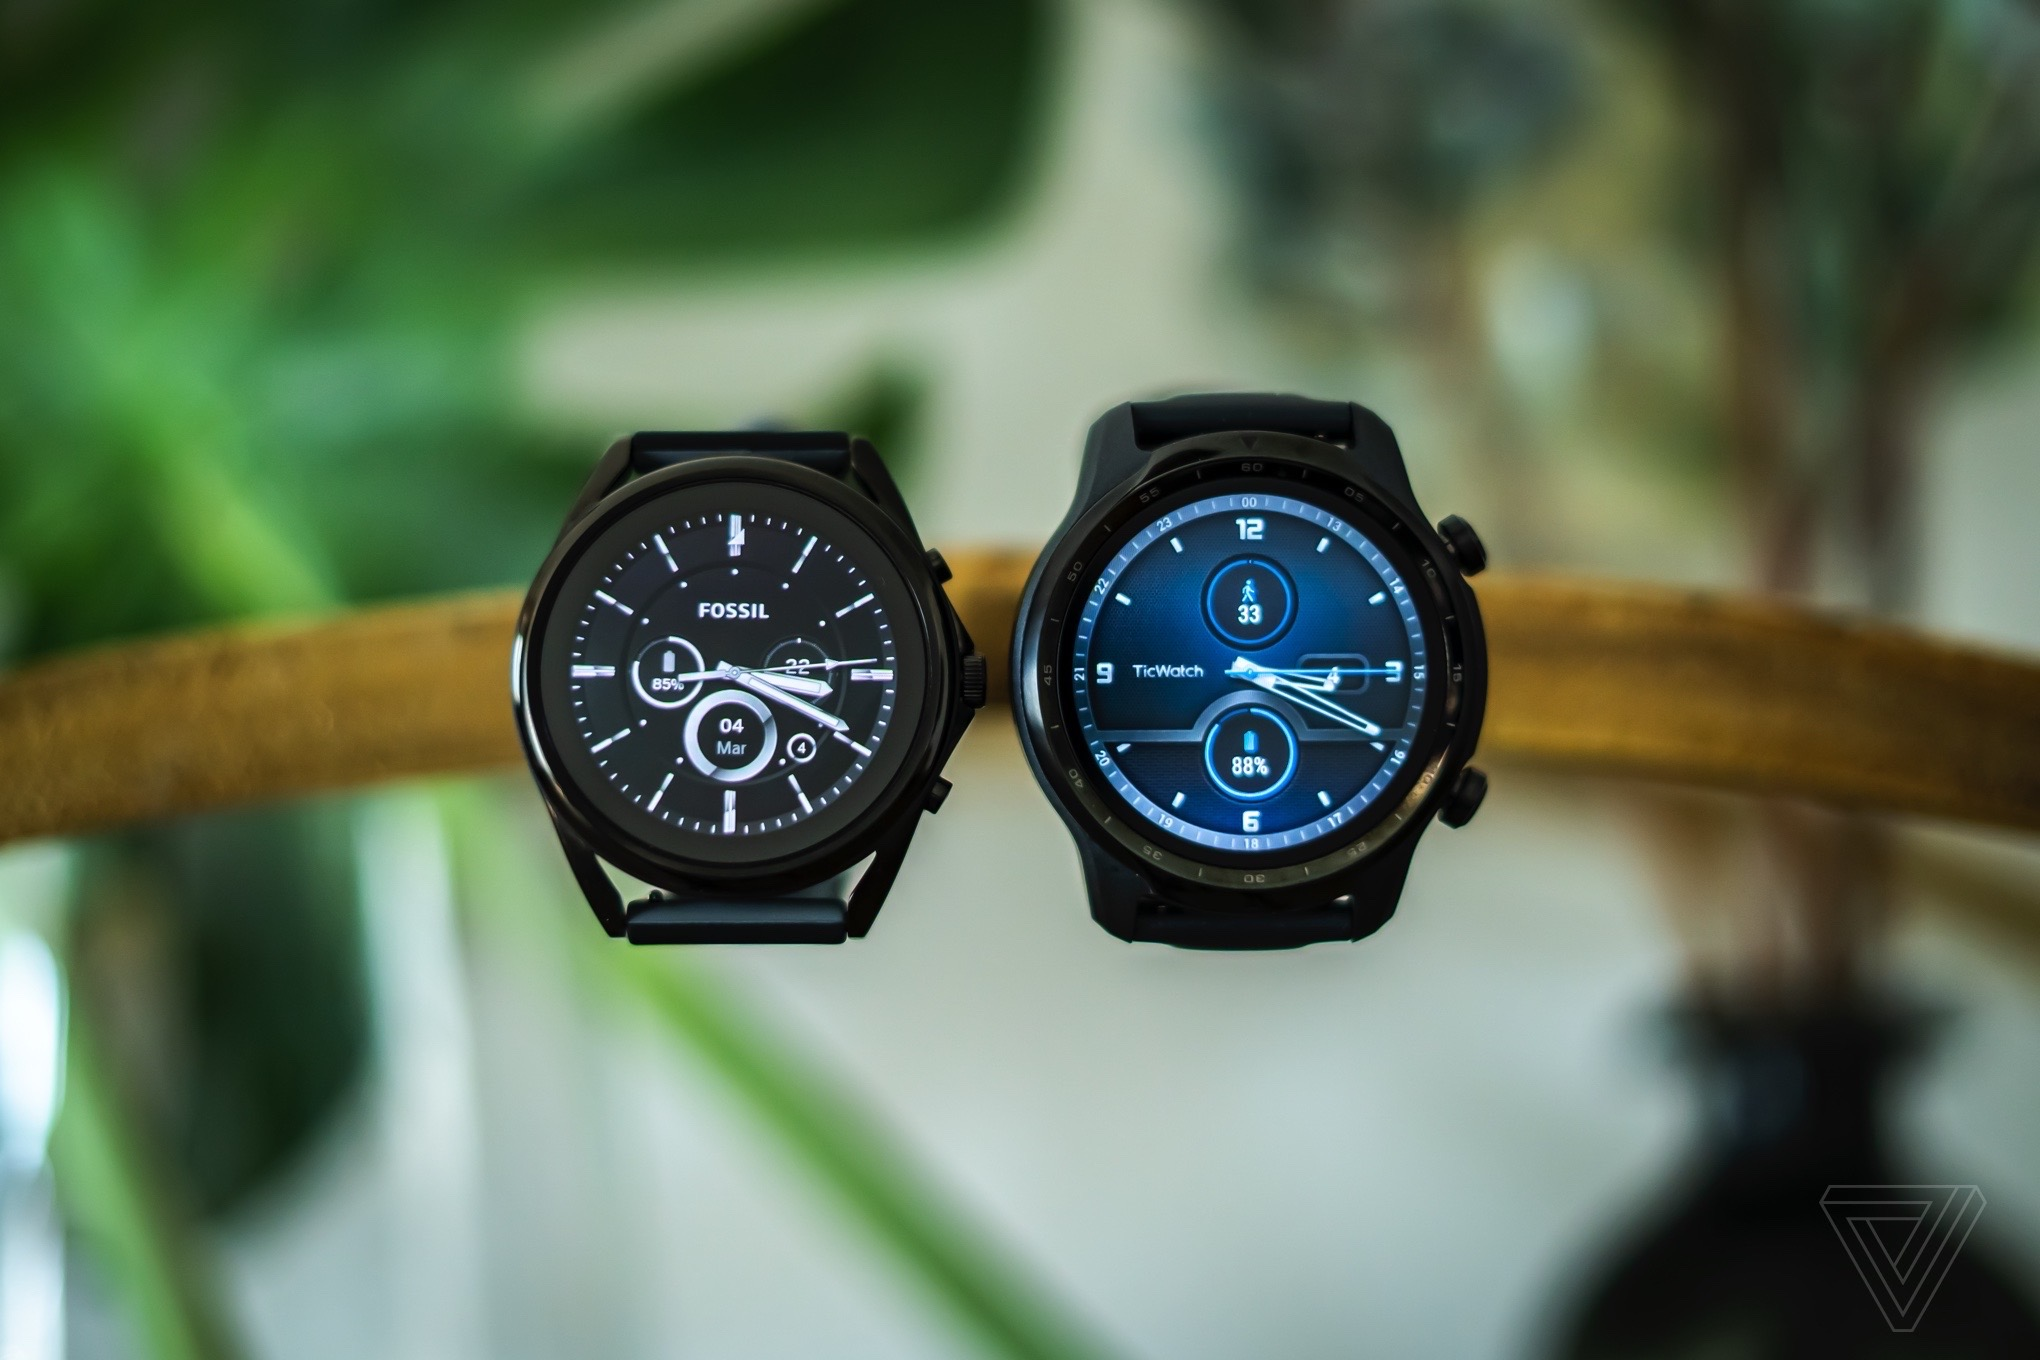 The Fossil Gen 5 LTE and Mobvoi TicWatch Pro 3